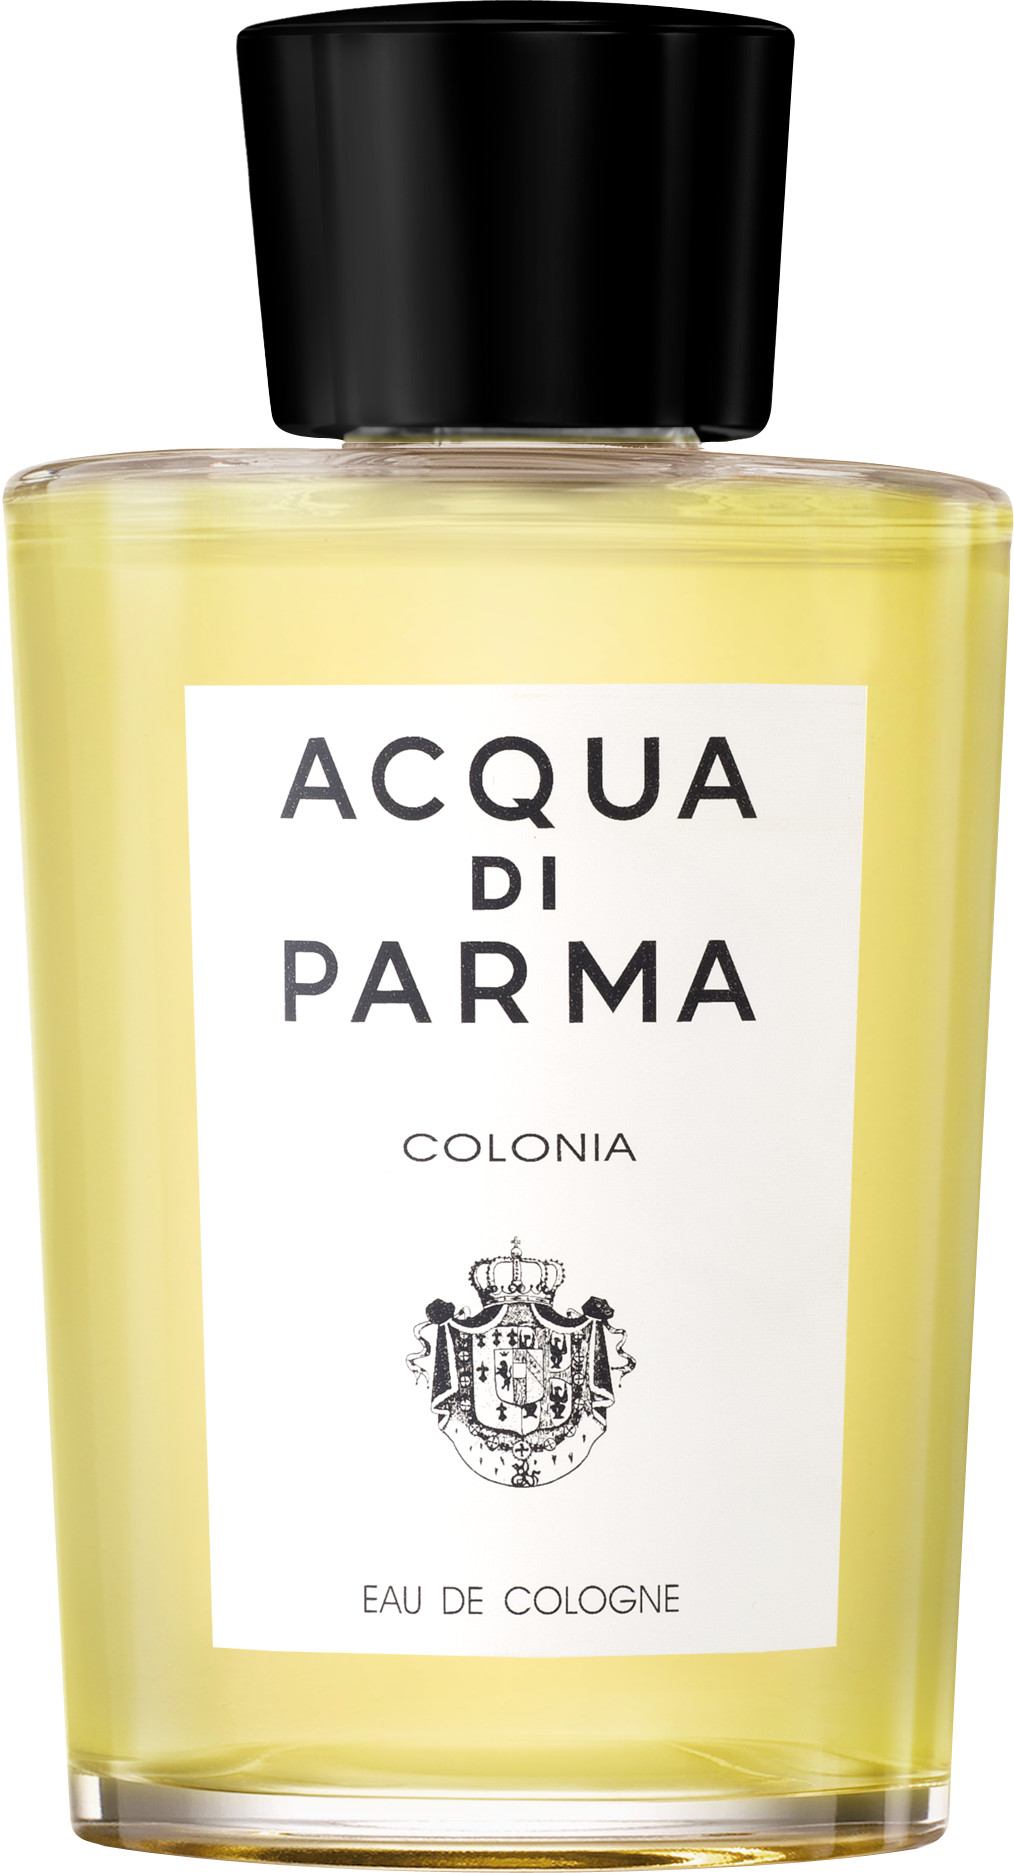 Fragrance Acqua Di Parma Colonia Eau de Cologne Splash Bottle